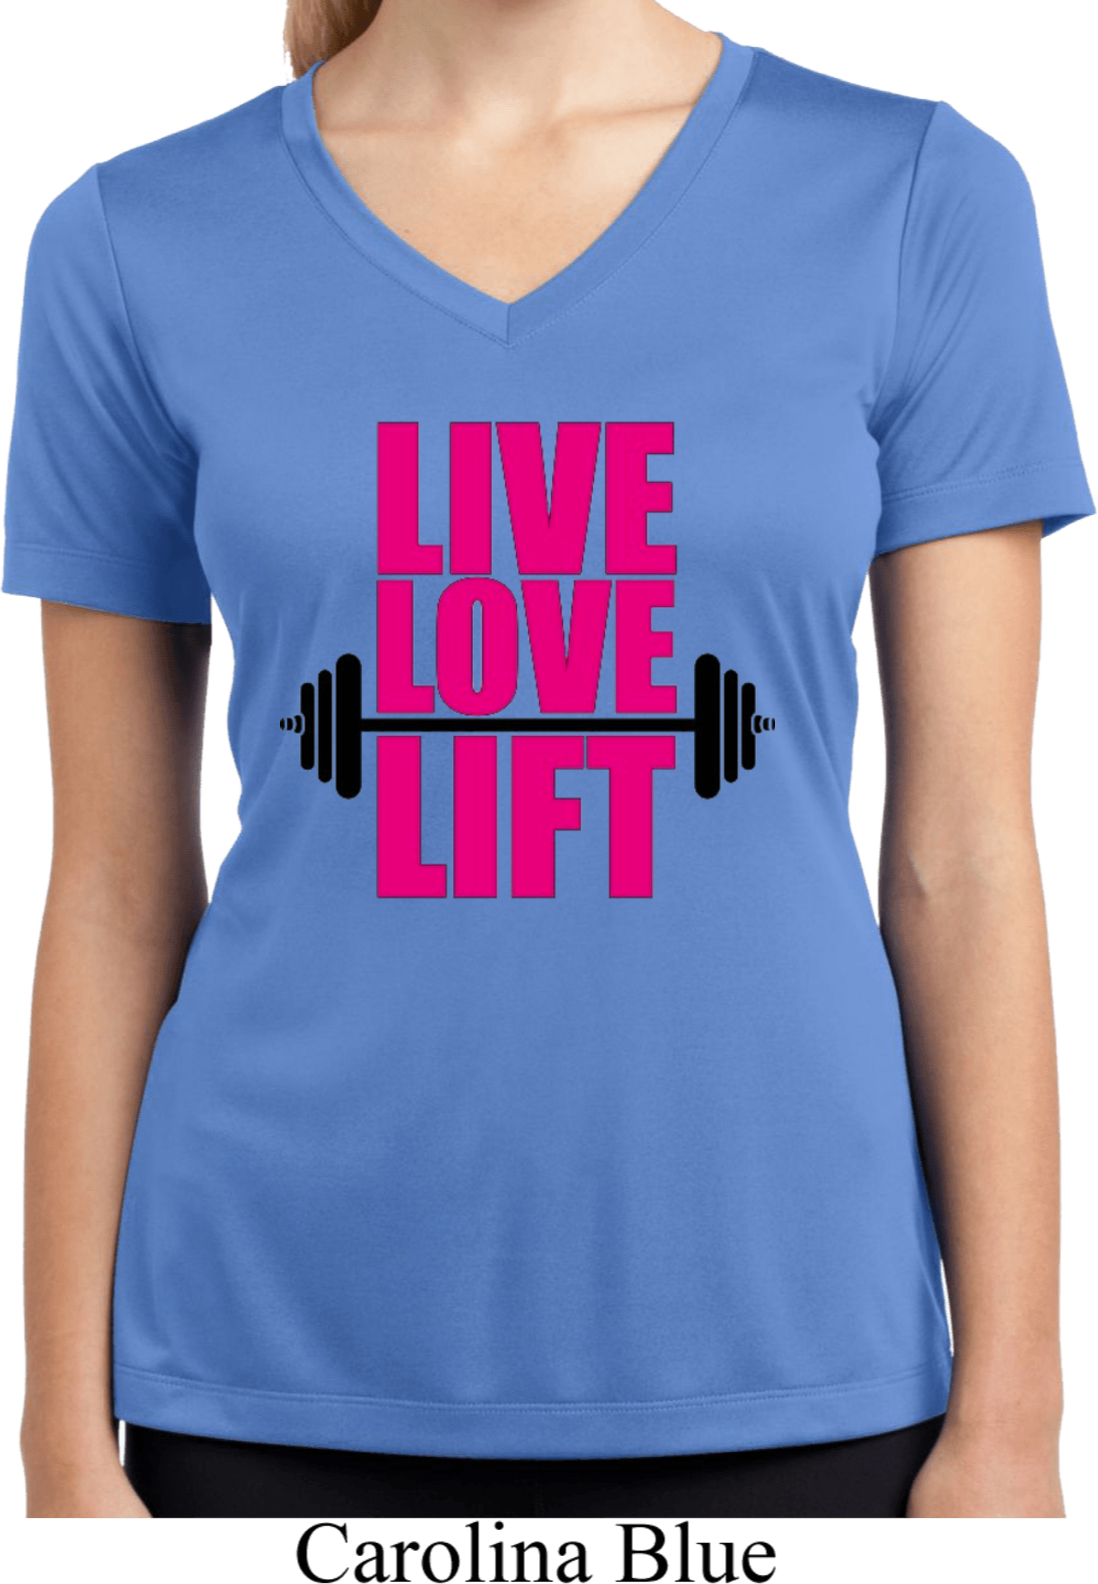 Amazon.com: Live Like Line shirt: Clothing